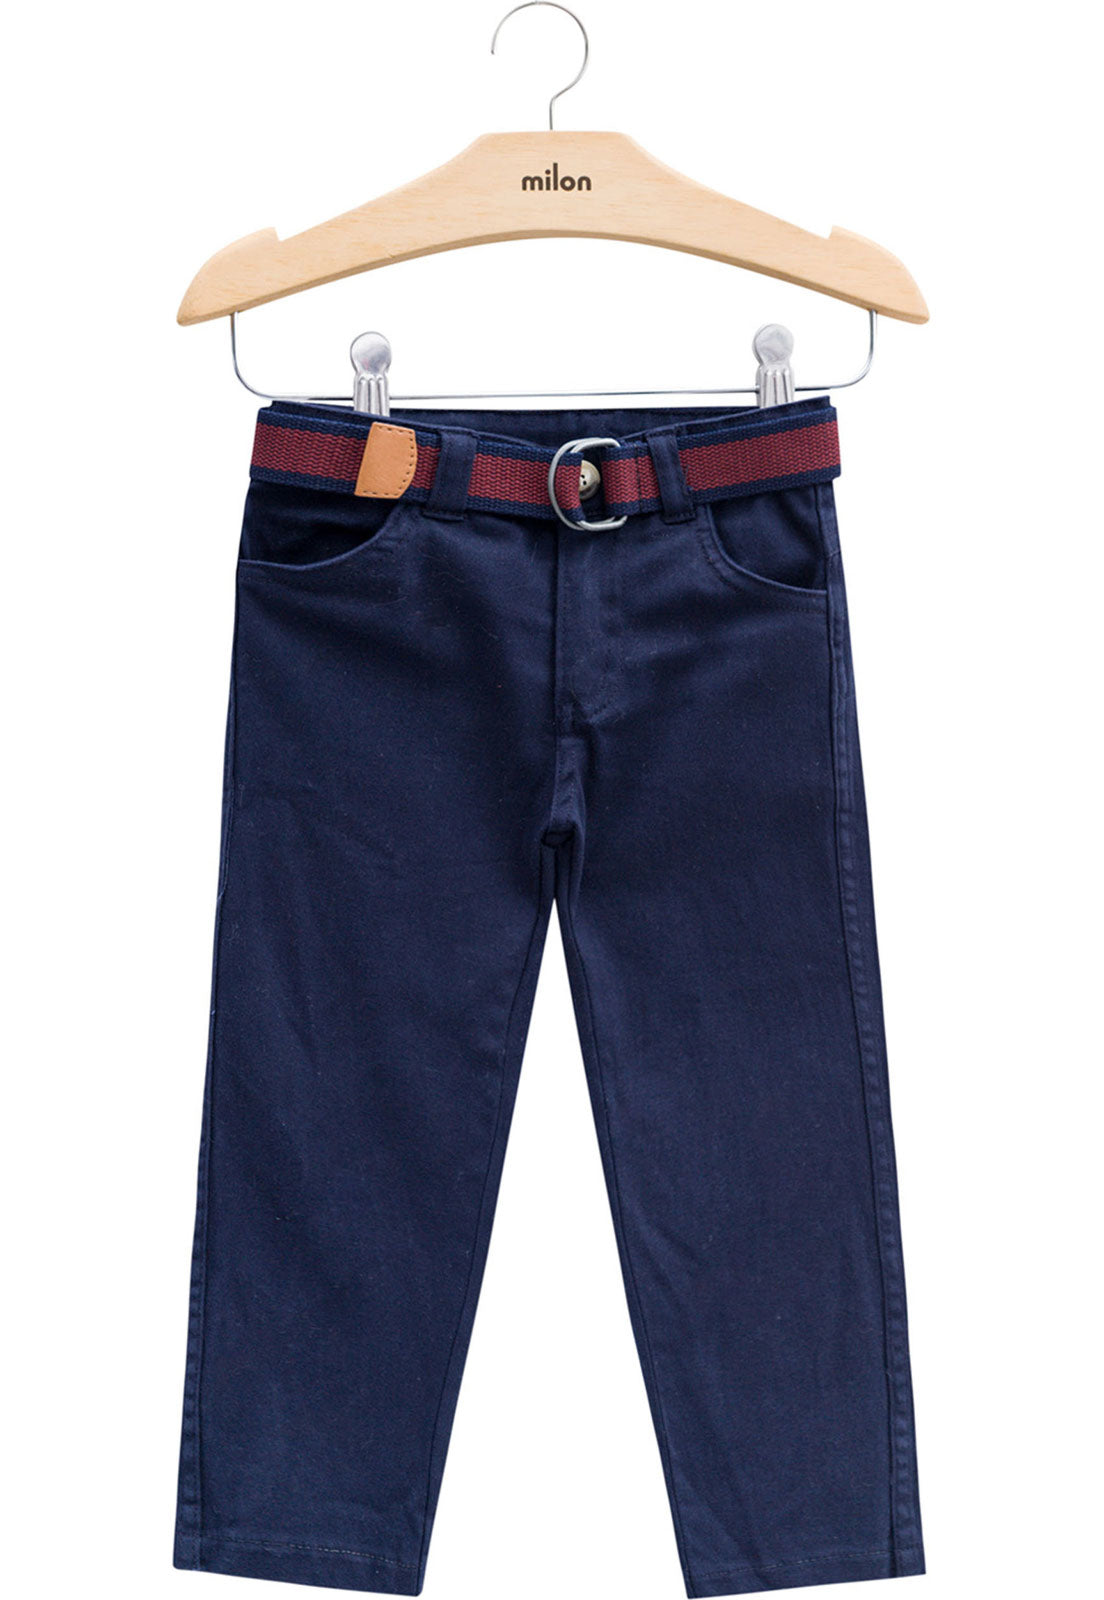 Milon navy belted trousers 12246